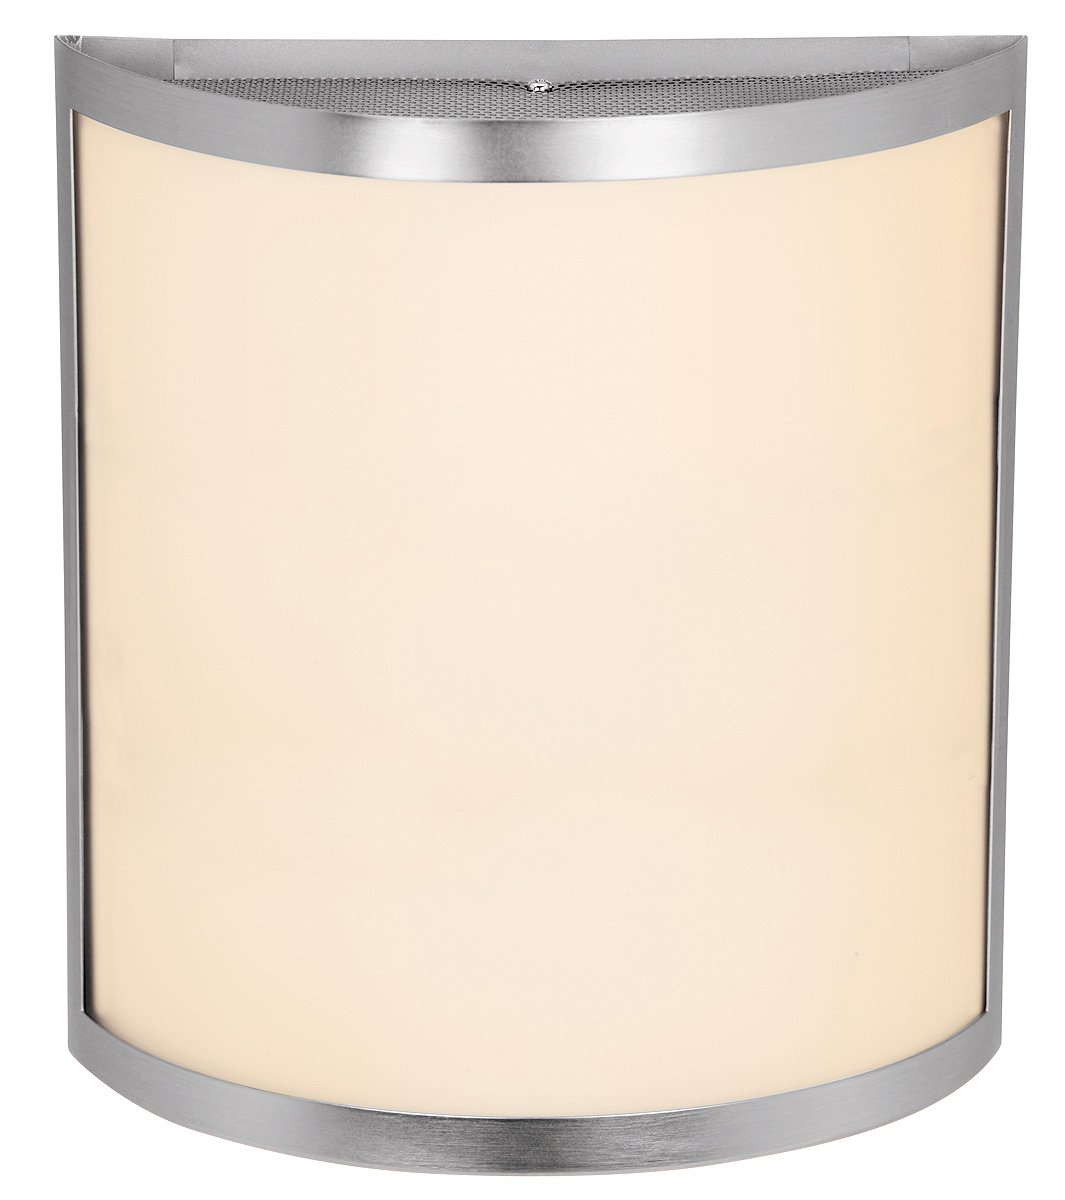 Access Lighting 20439-BS/OPL Artemis ADA Wall Fixture, Brushed Steel Finish with Opal Glass Shade